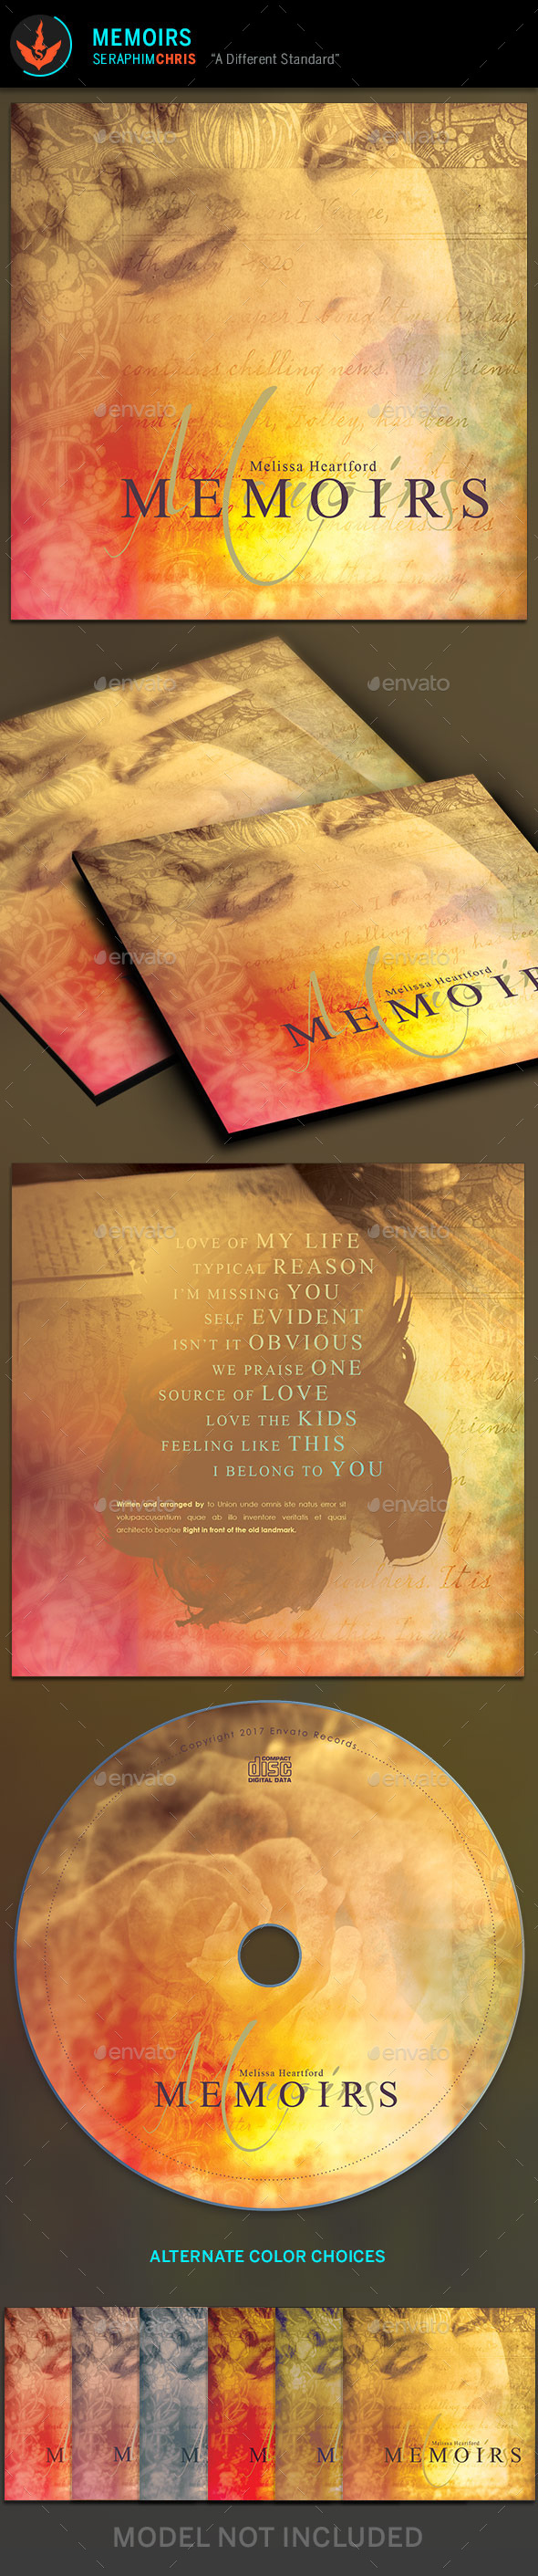 Memoirs CD Artwork Template